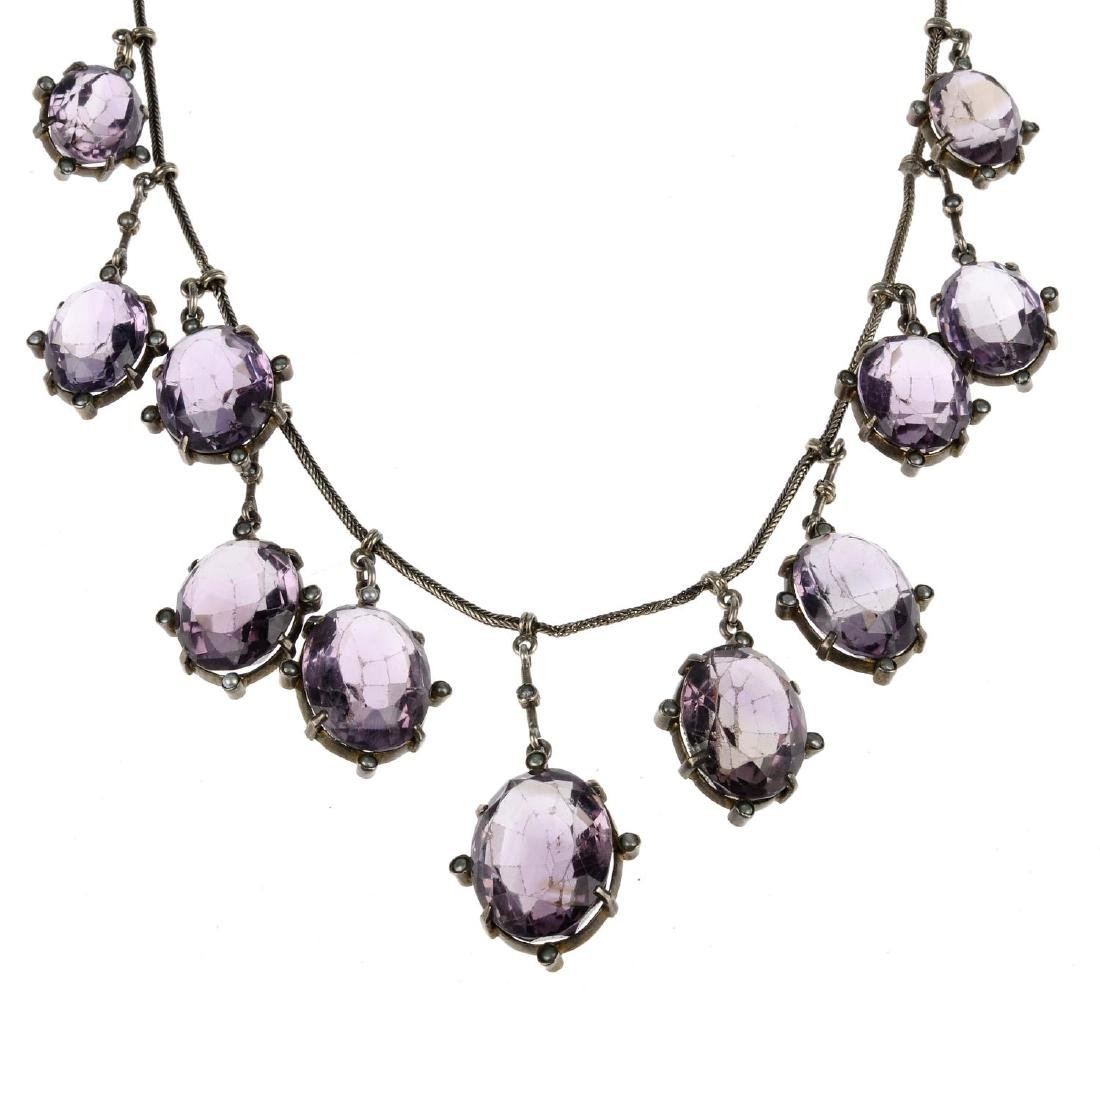 An amethyst and split pearl necklace. The herringbone